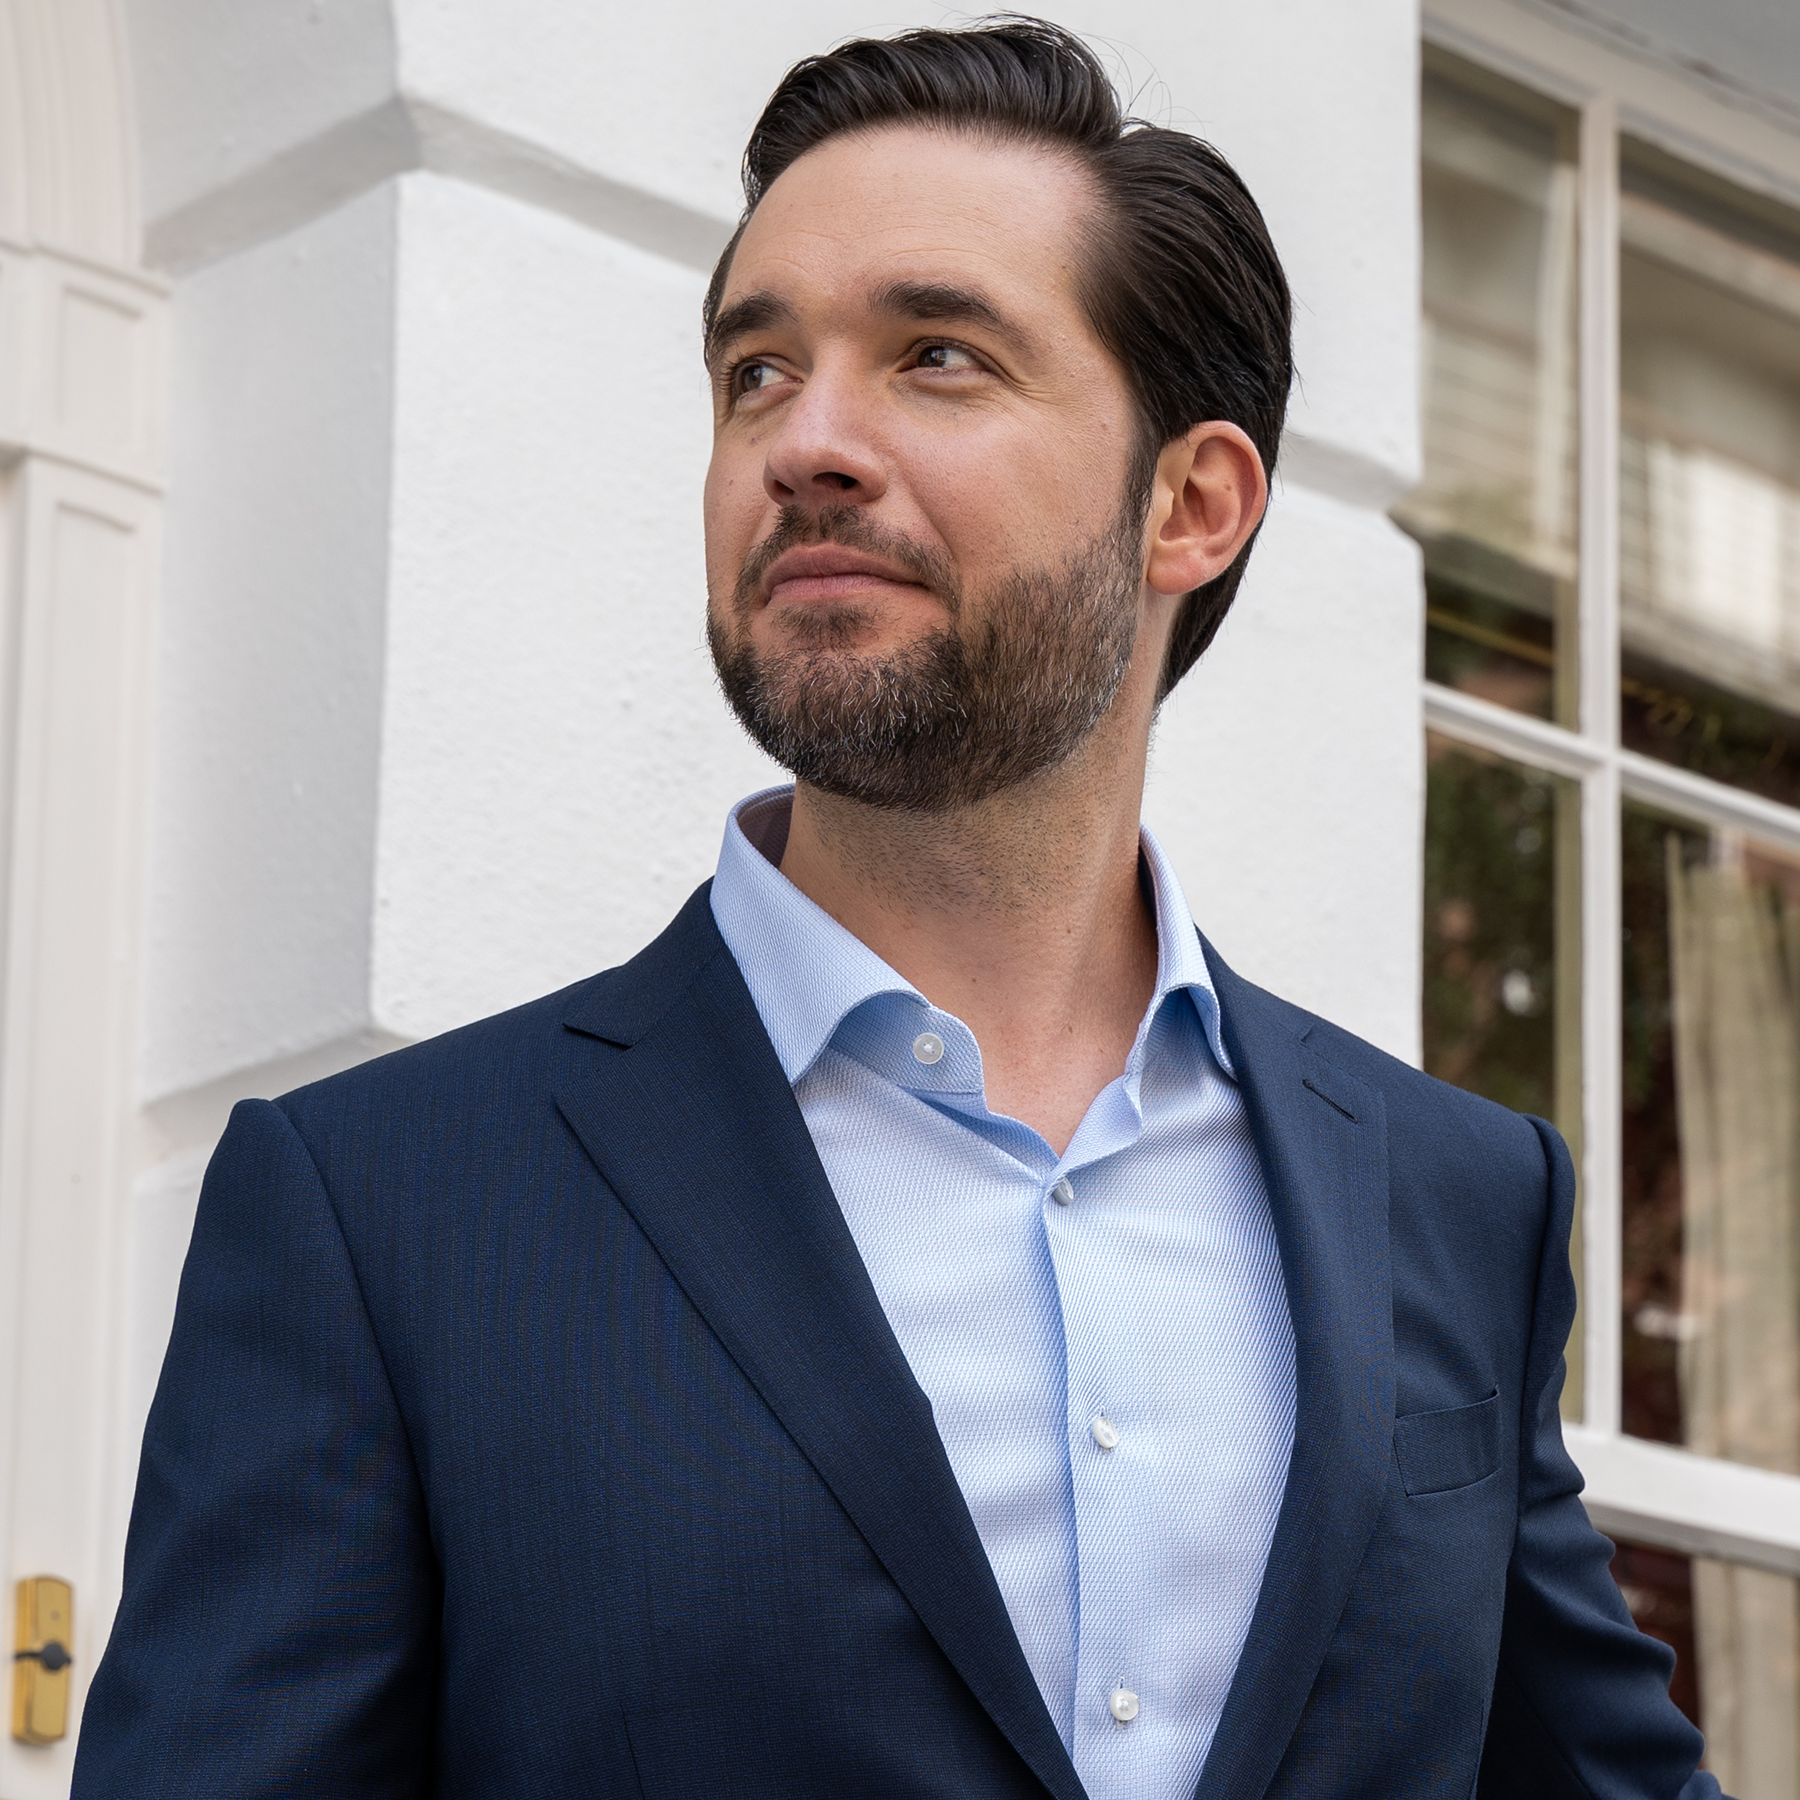 Reddit Co-Founder Alexis Ohanian Talks Growing Up Online And The Future Of The Internet